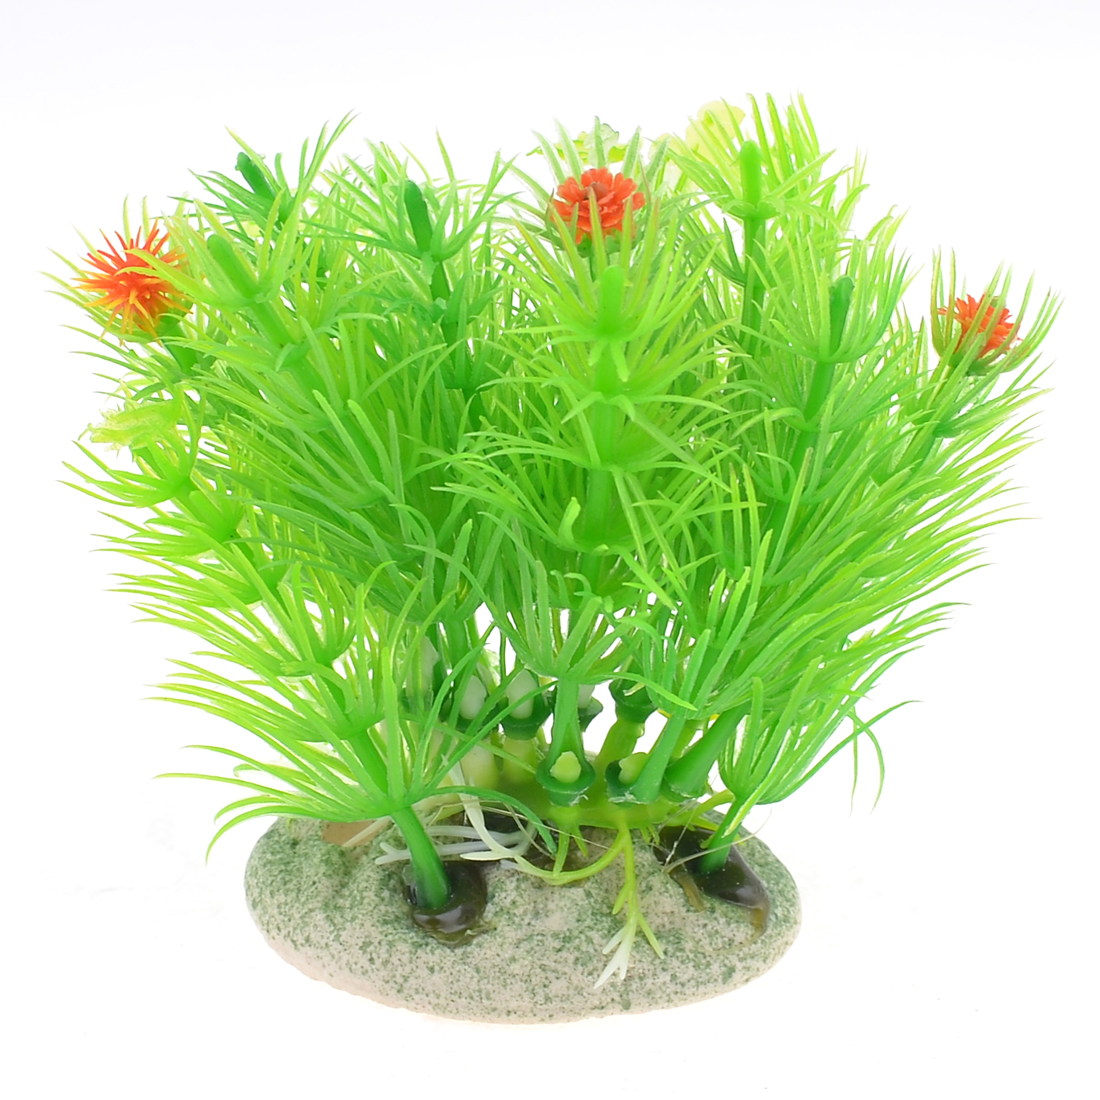 "Fish Tank Aquarium Decor Plastic Green Grass Plant 3.3"" Height"